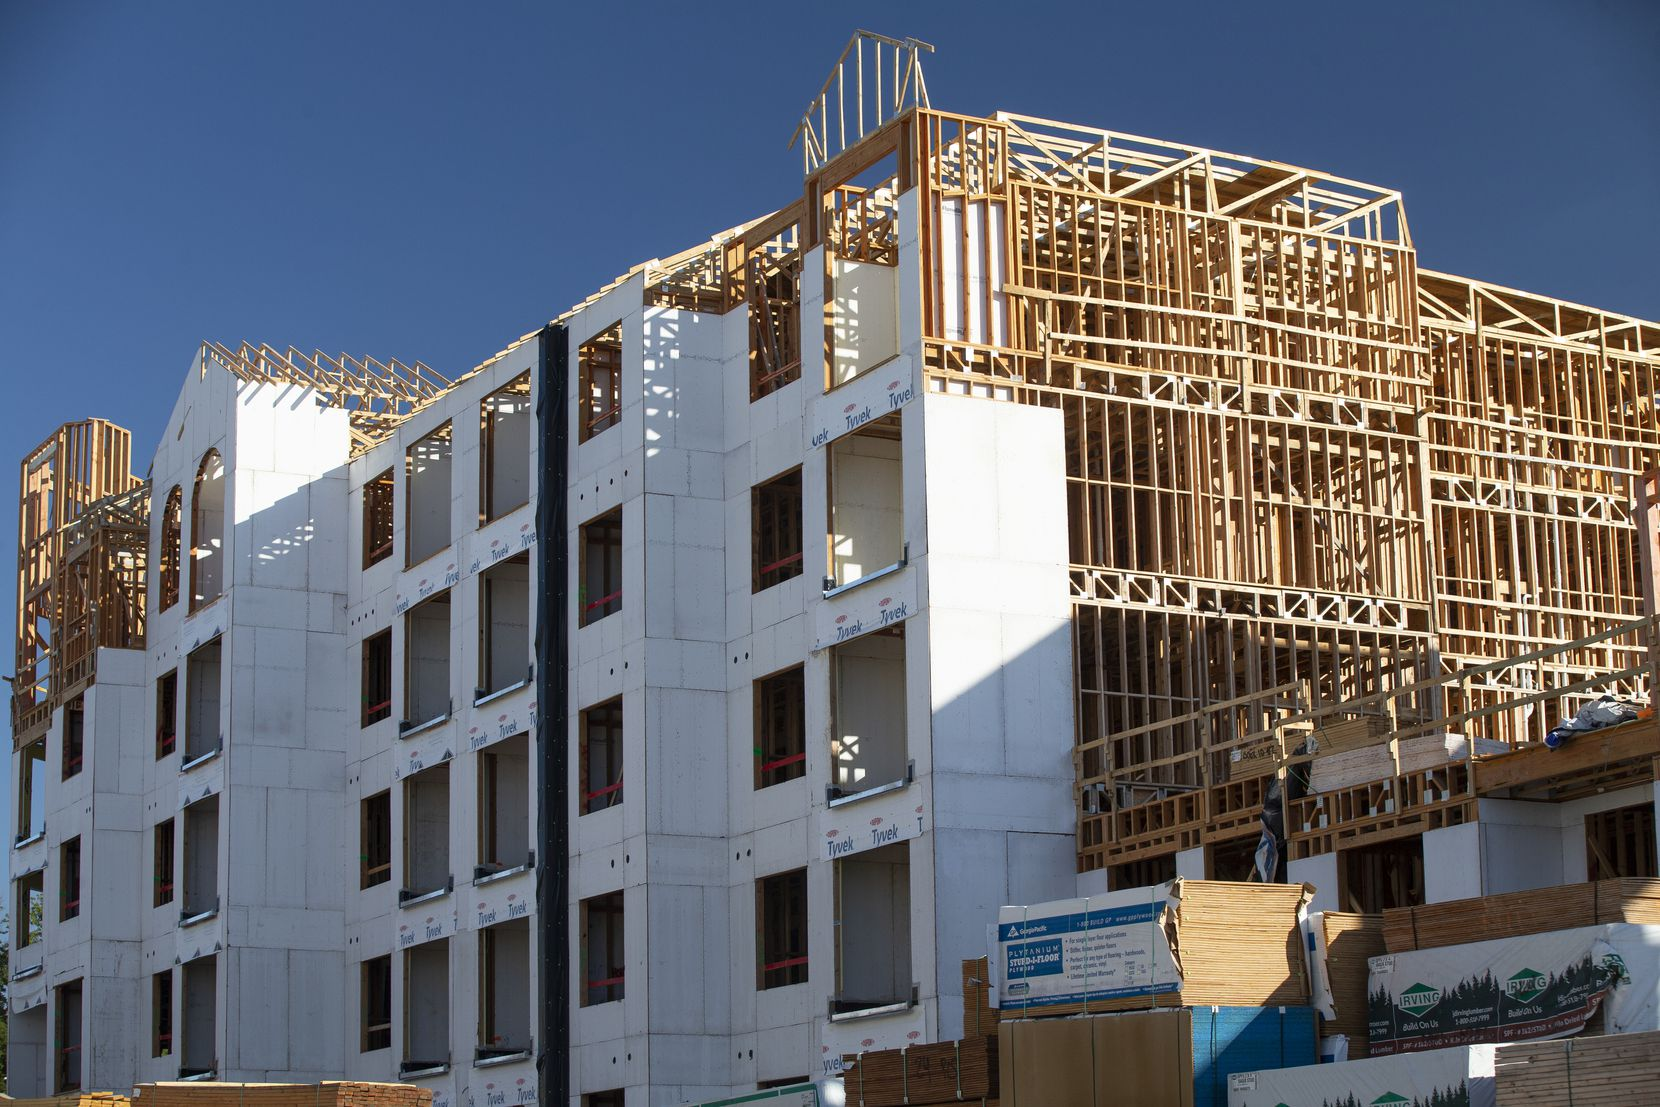 Apartments under construction in the Harbor District in Rockwall, Thursday, August 12, 2021. Kaufman County led the Dallas-Fort Worth metropolitan area with a 40% population increase, followed by Rockwall with a 38% gain. Both counties have a white population that exceeds 60% of the total.